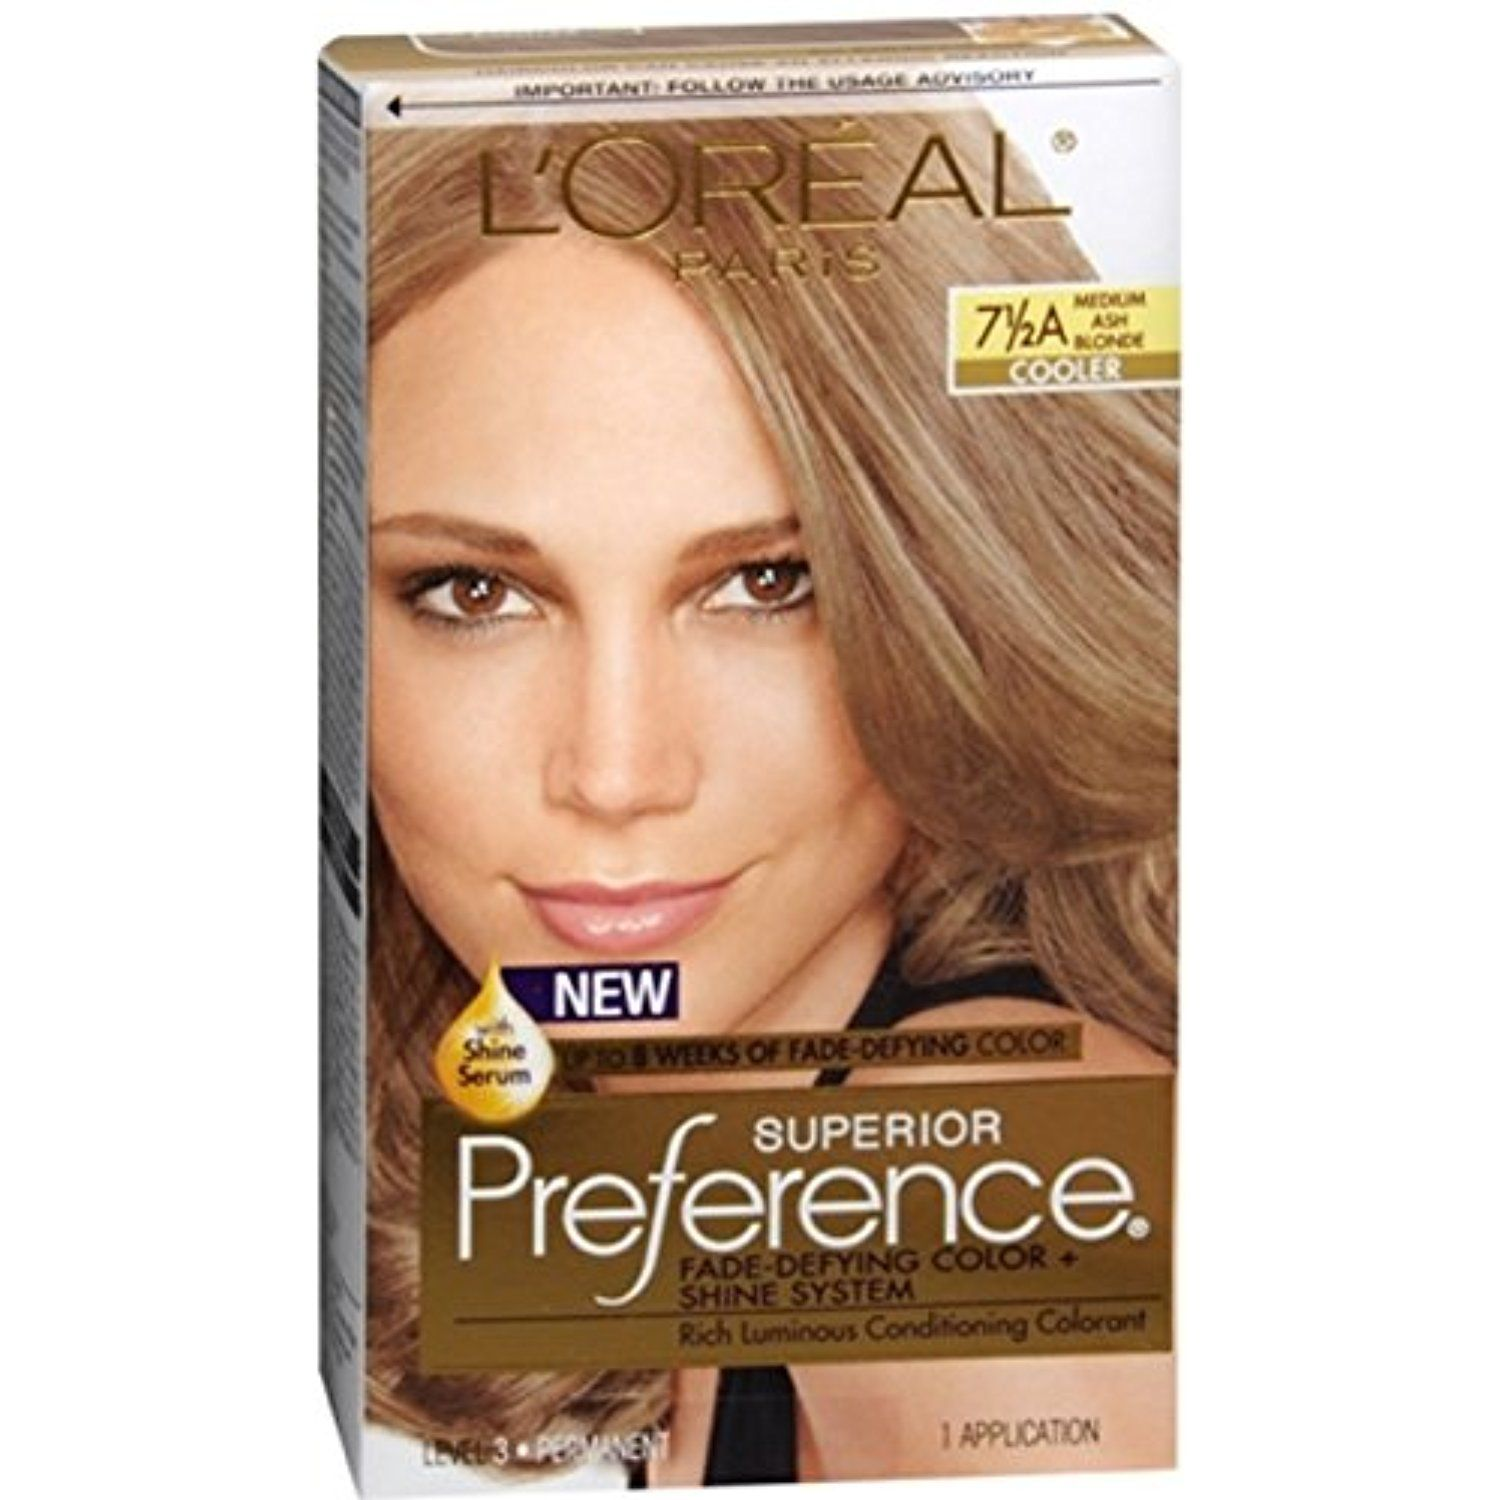 Pref Haircol 7 5a Size 1ct L Oreal Preference Hair Color Medium Ash Blonde Haircoloringproducts Hair Color Medium Hair Color Loreal